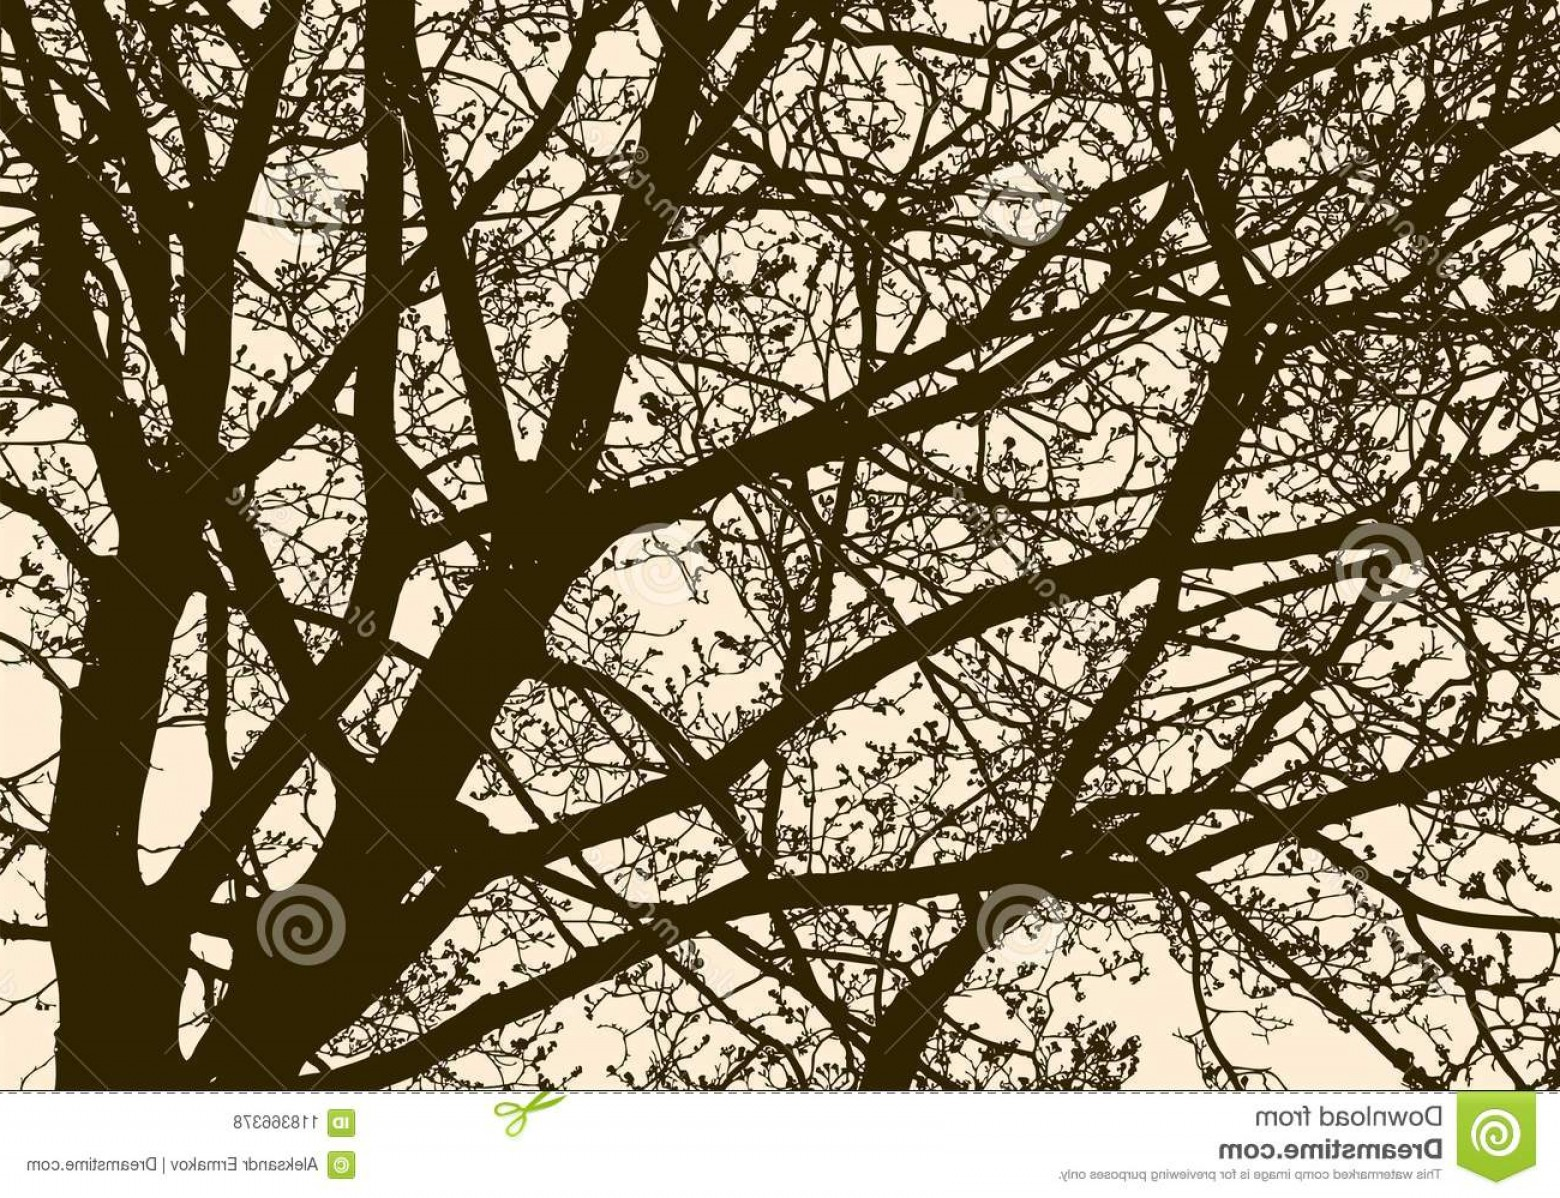 Spring Vector Silhouette: Silhouette Flowering Tree Spring Vector Image Branches Deciduous Image